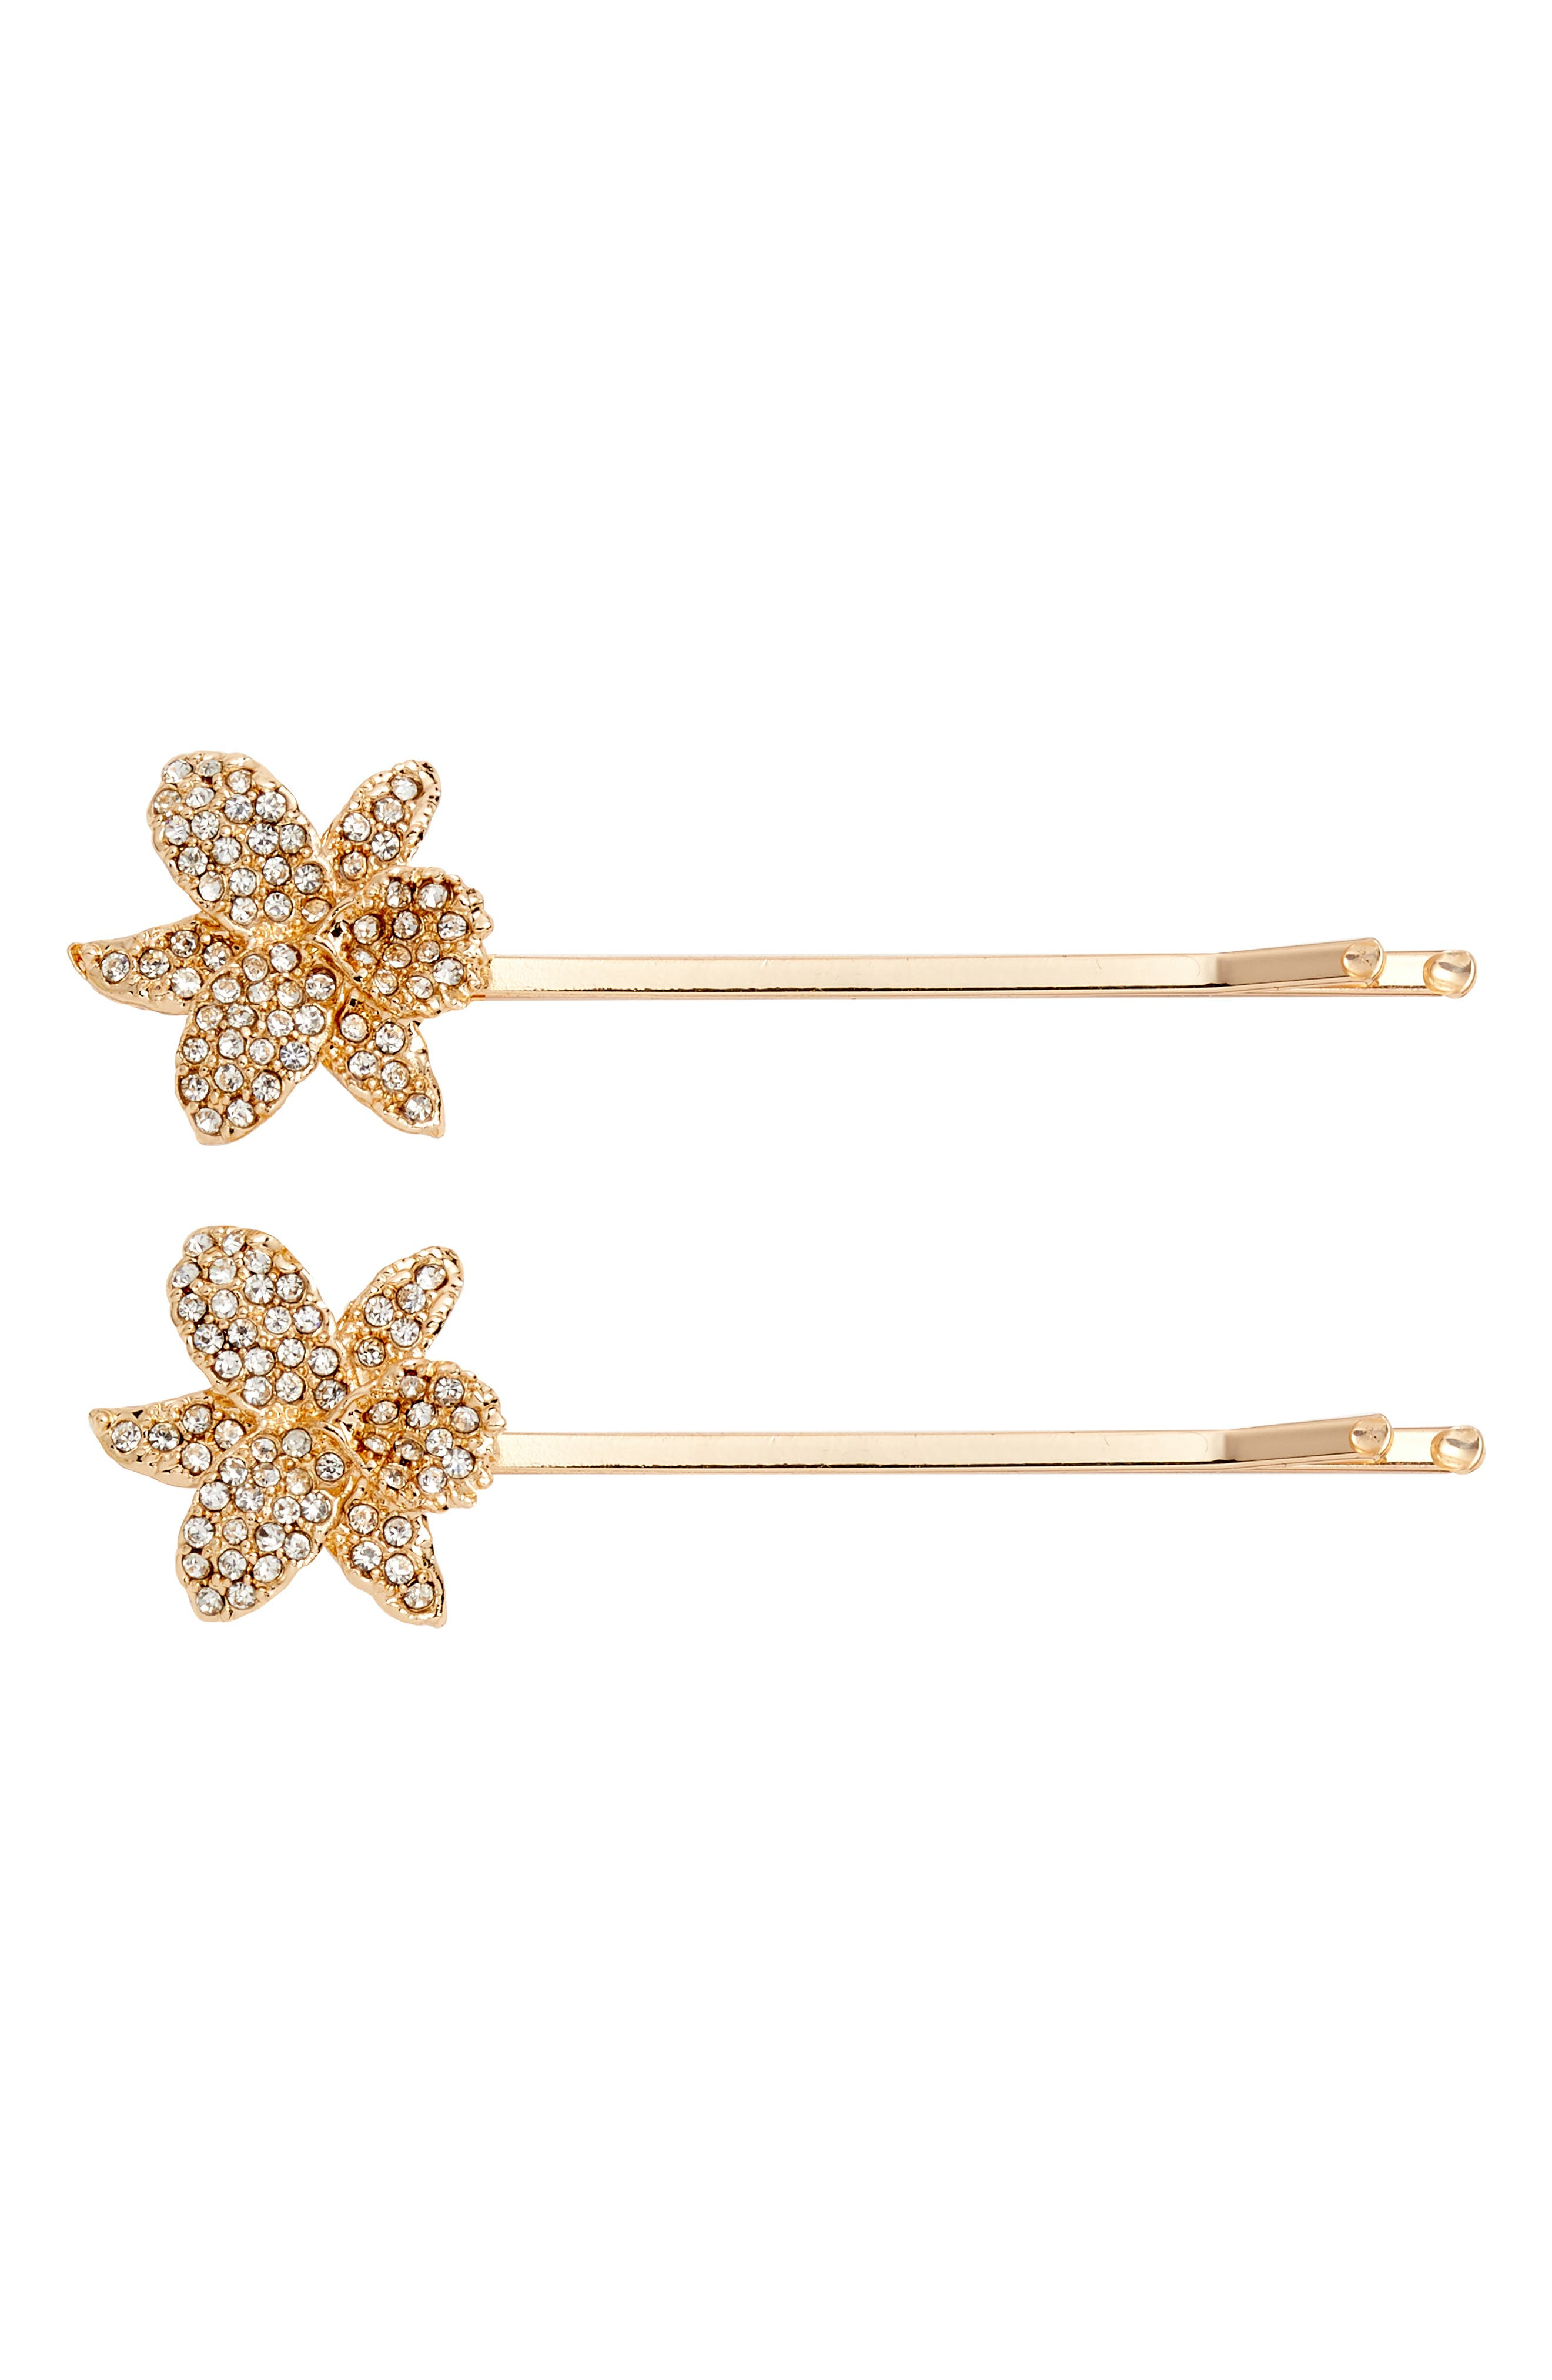 Small Orchid Bobby Pins,                         Main,                         color,